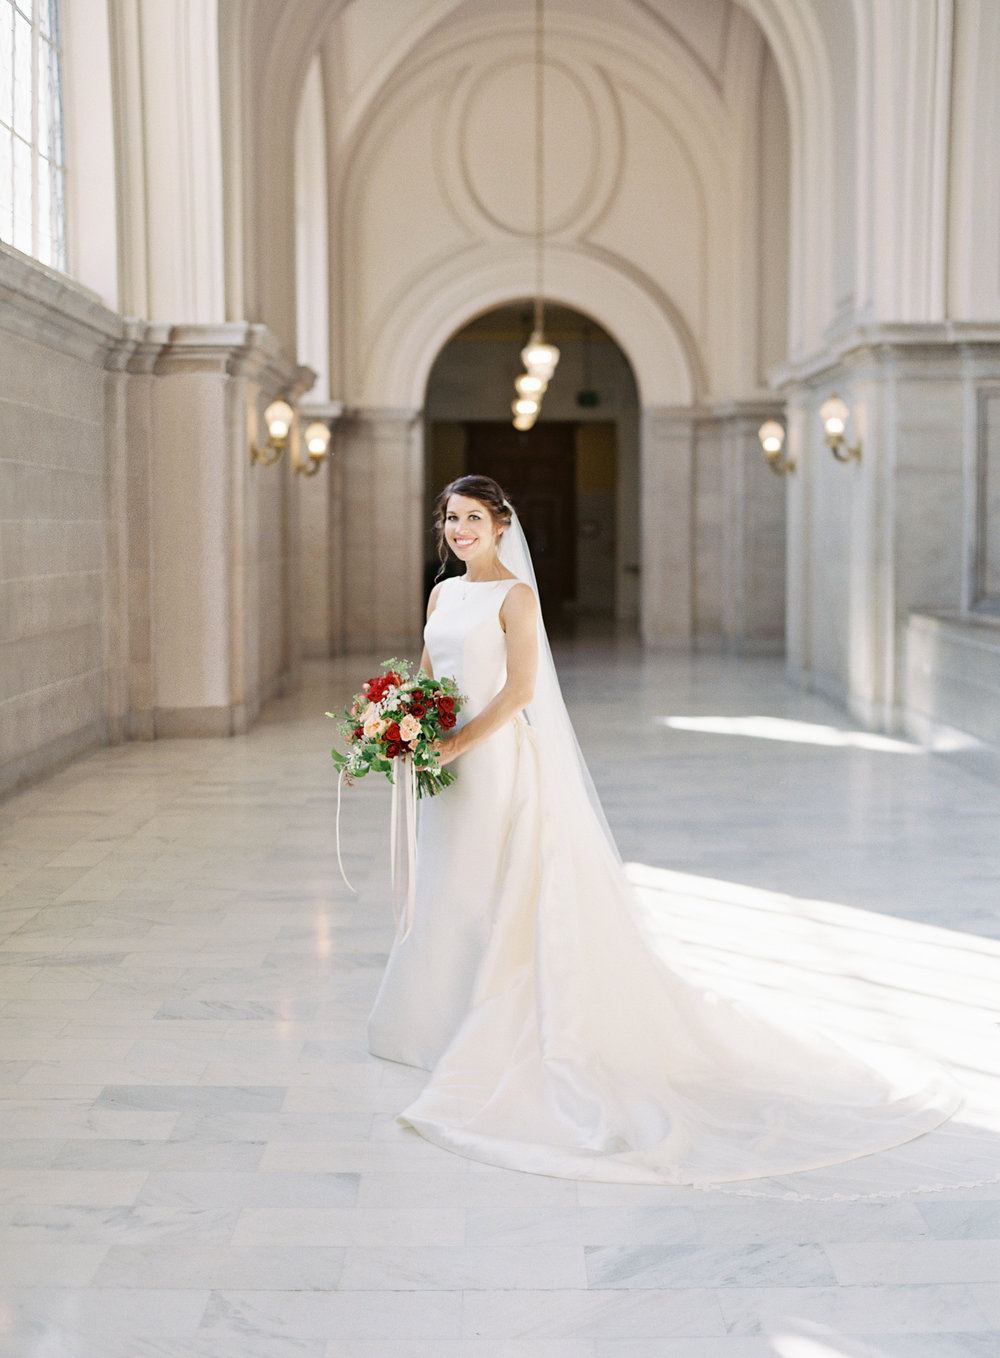 Meghan Mehan Photography - California Wedding Photographer | San Francisco City Hall Wedding 047.jpg